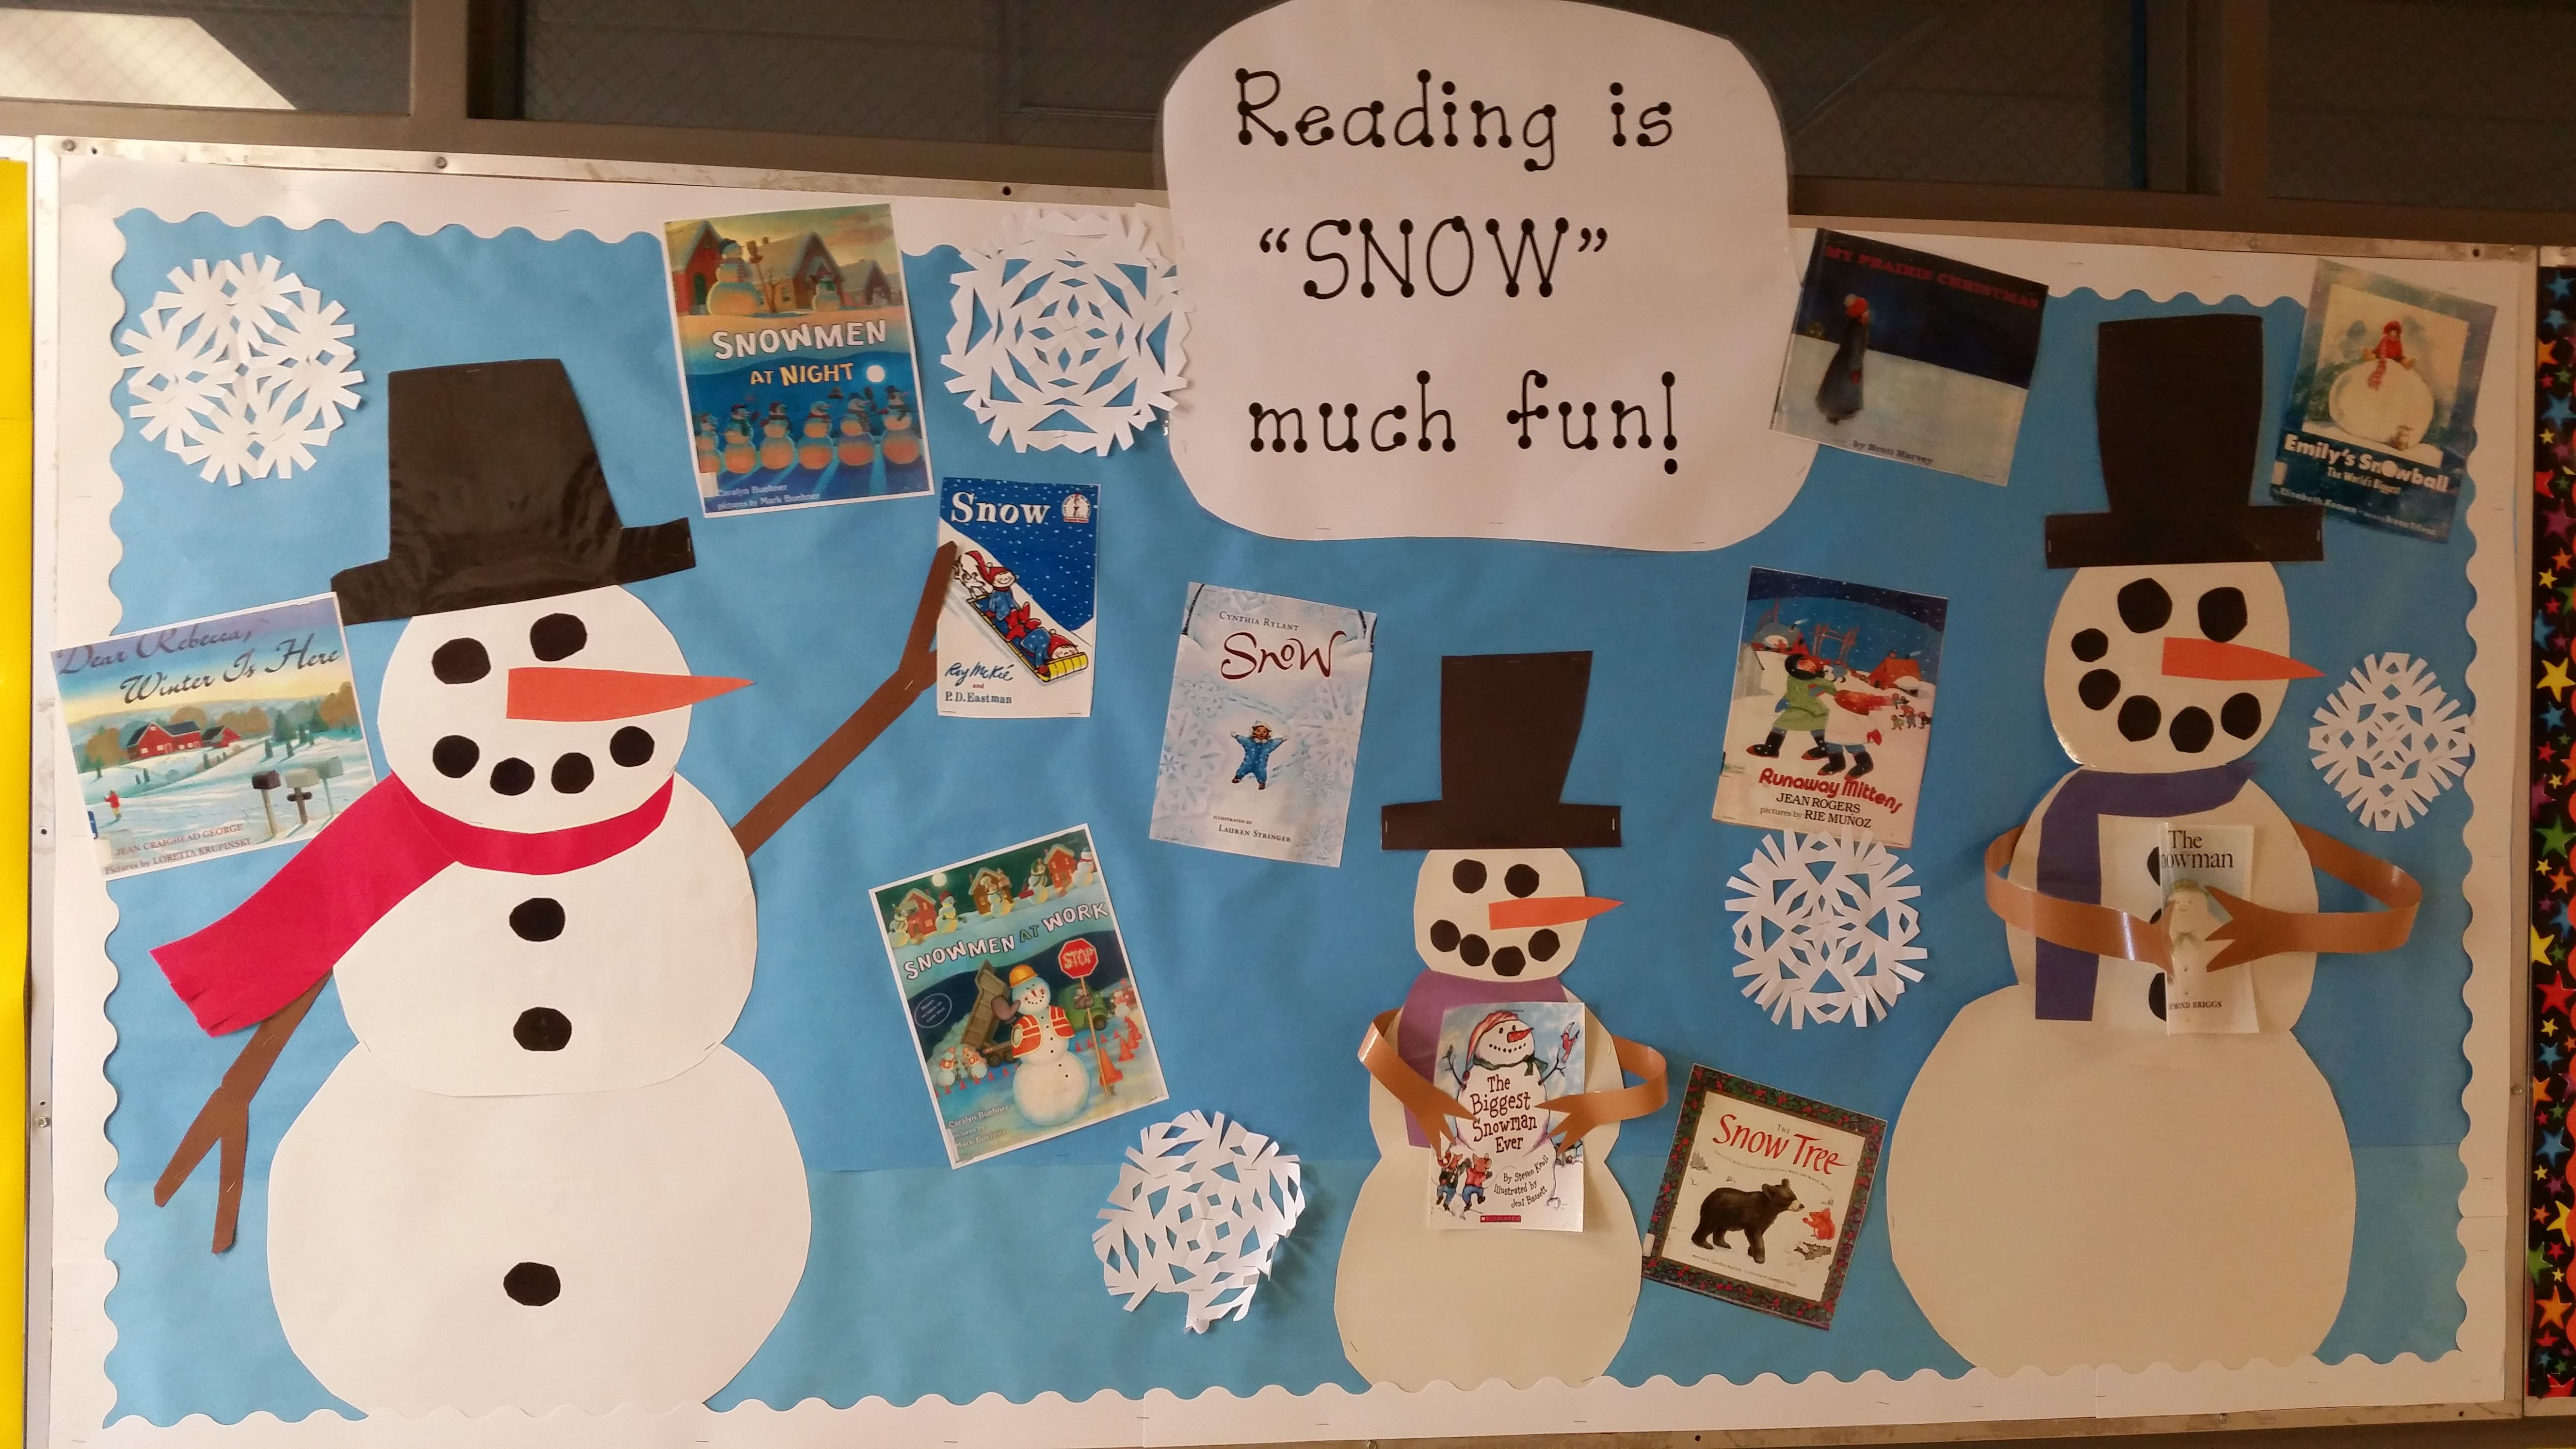 The Snowmen Are Reading Books About Snow Snowmen And